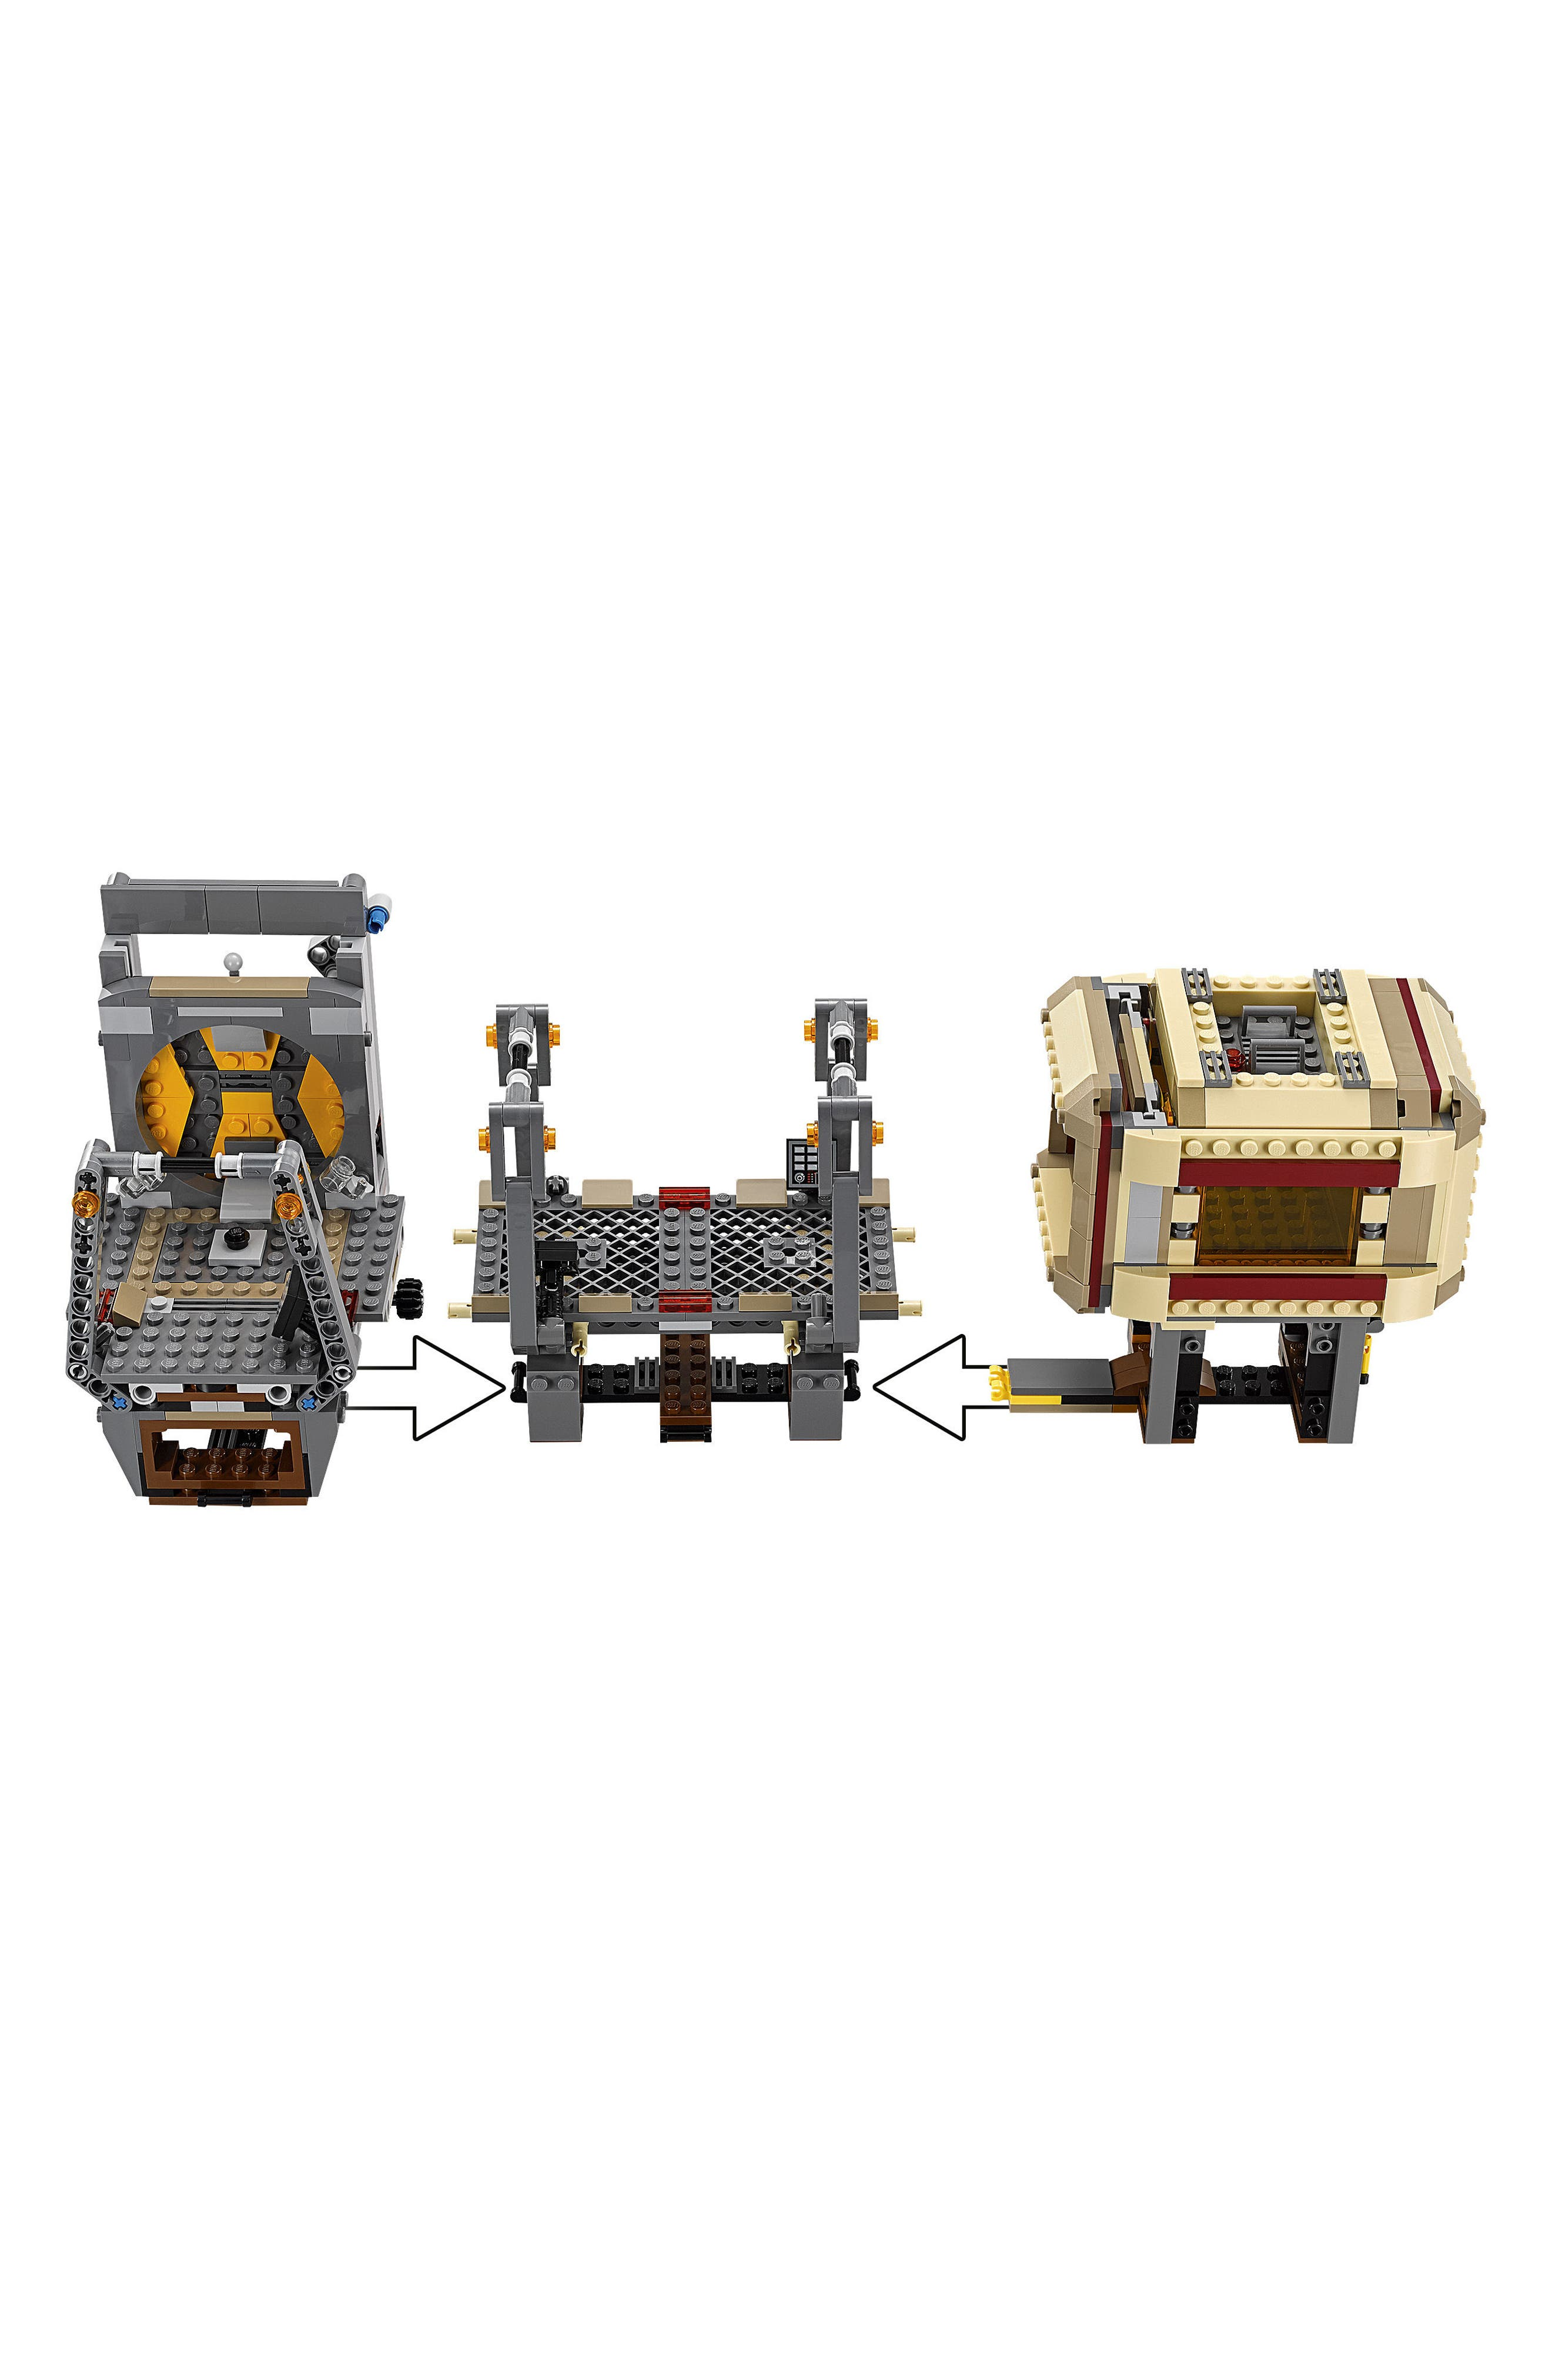 Star Wars<sup>™</sup>: The Force Awakens Rathtar<sup>™</sup> Escape Play Set - 75180,                             Alternate thumbnail 5, color,                             Multi